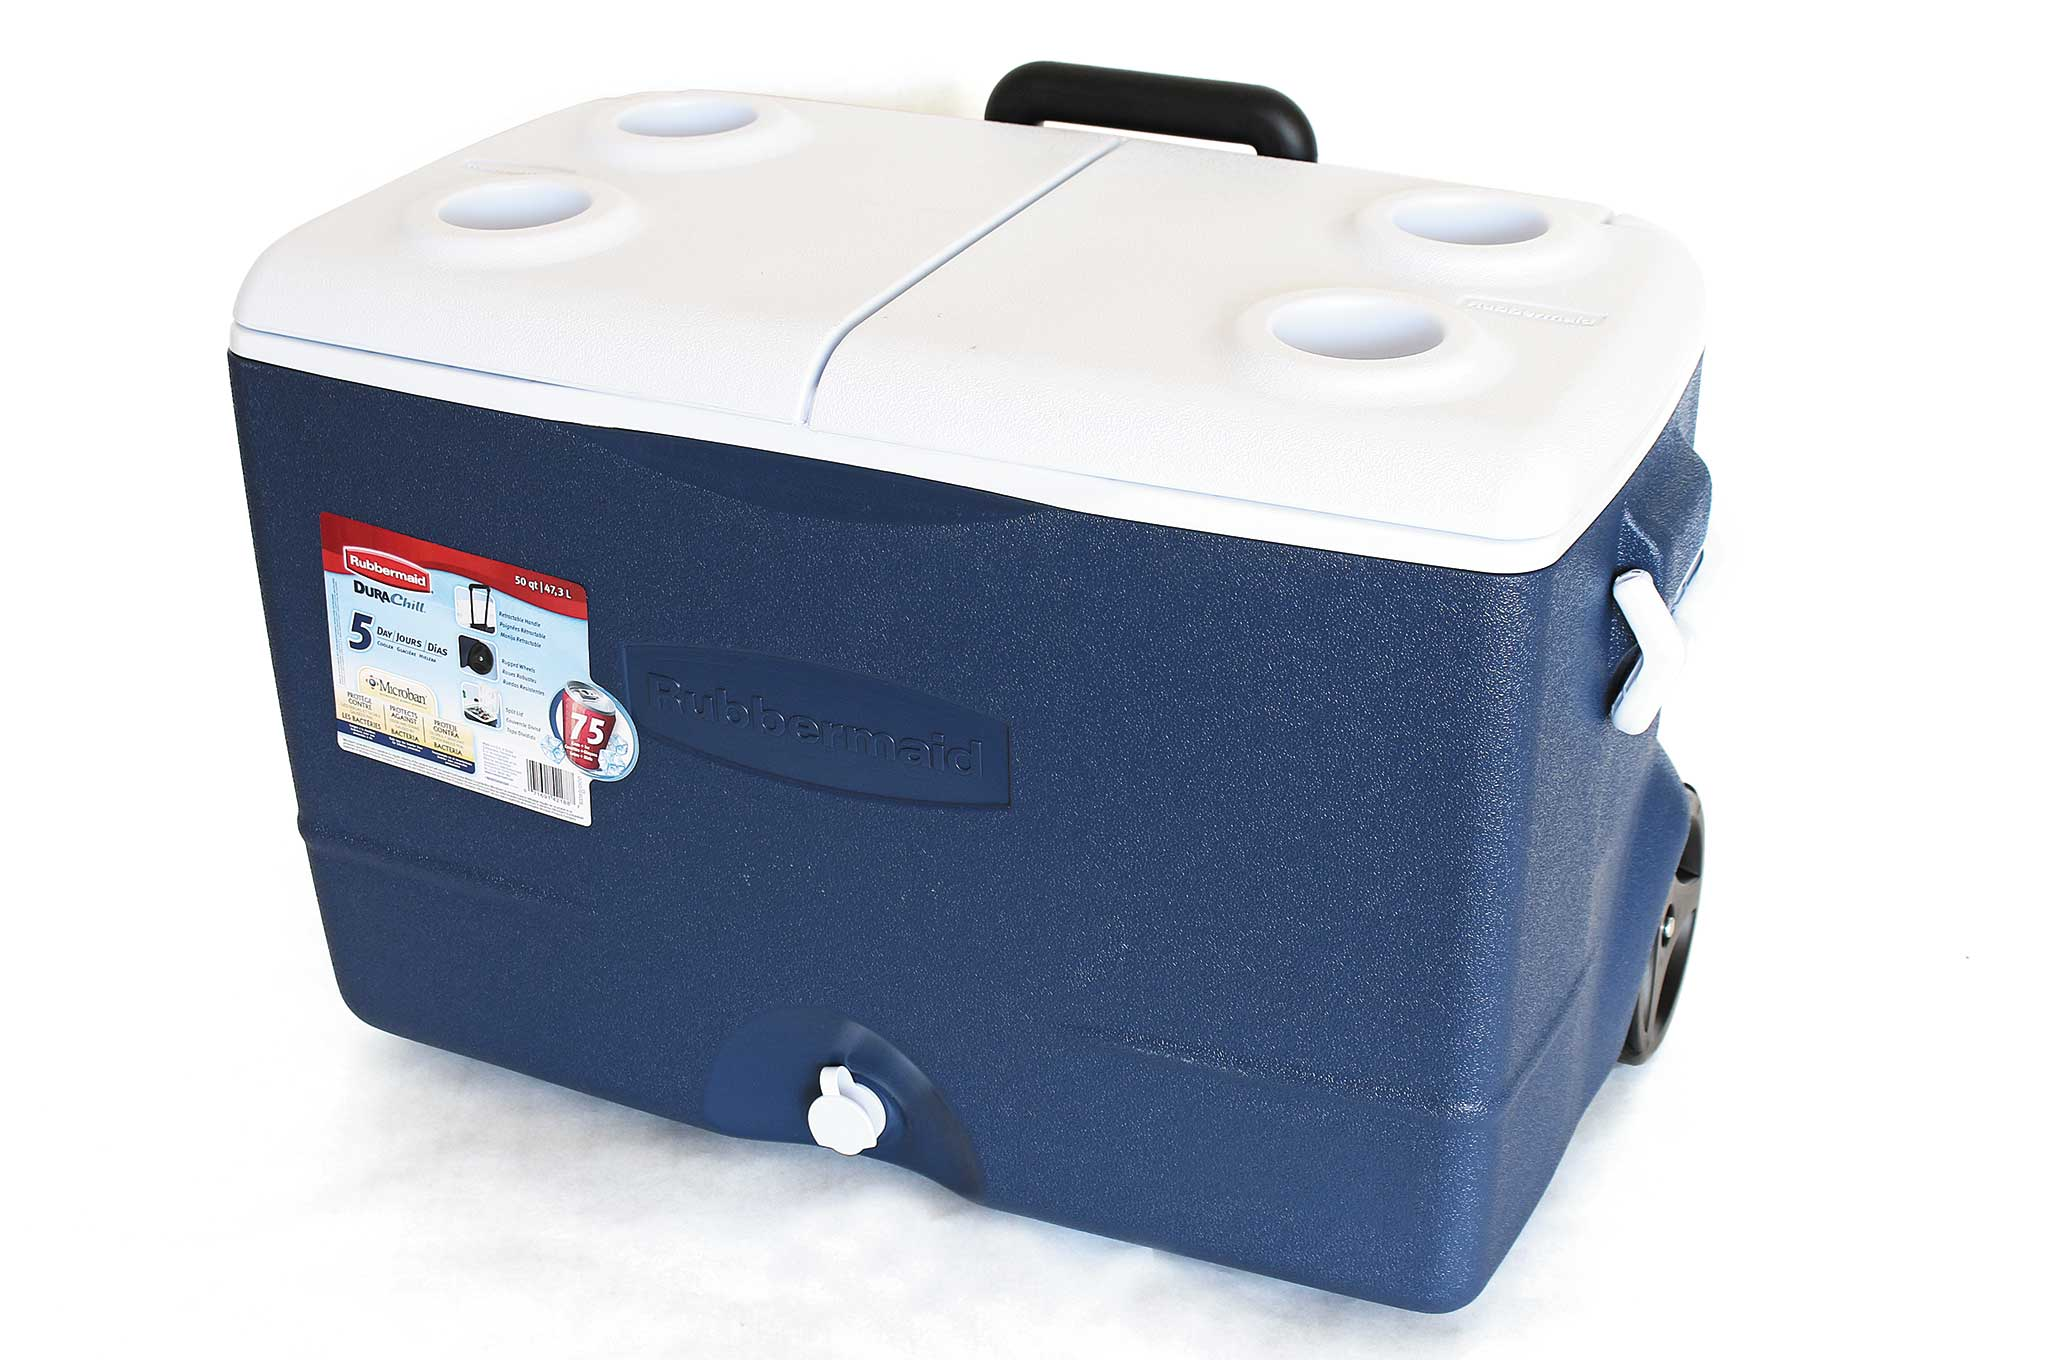 Rubbermaid durachill 5 day wheeled cooler recoil offgrid for Motor cooler on wheels